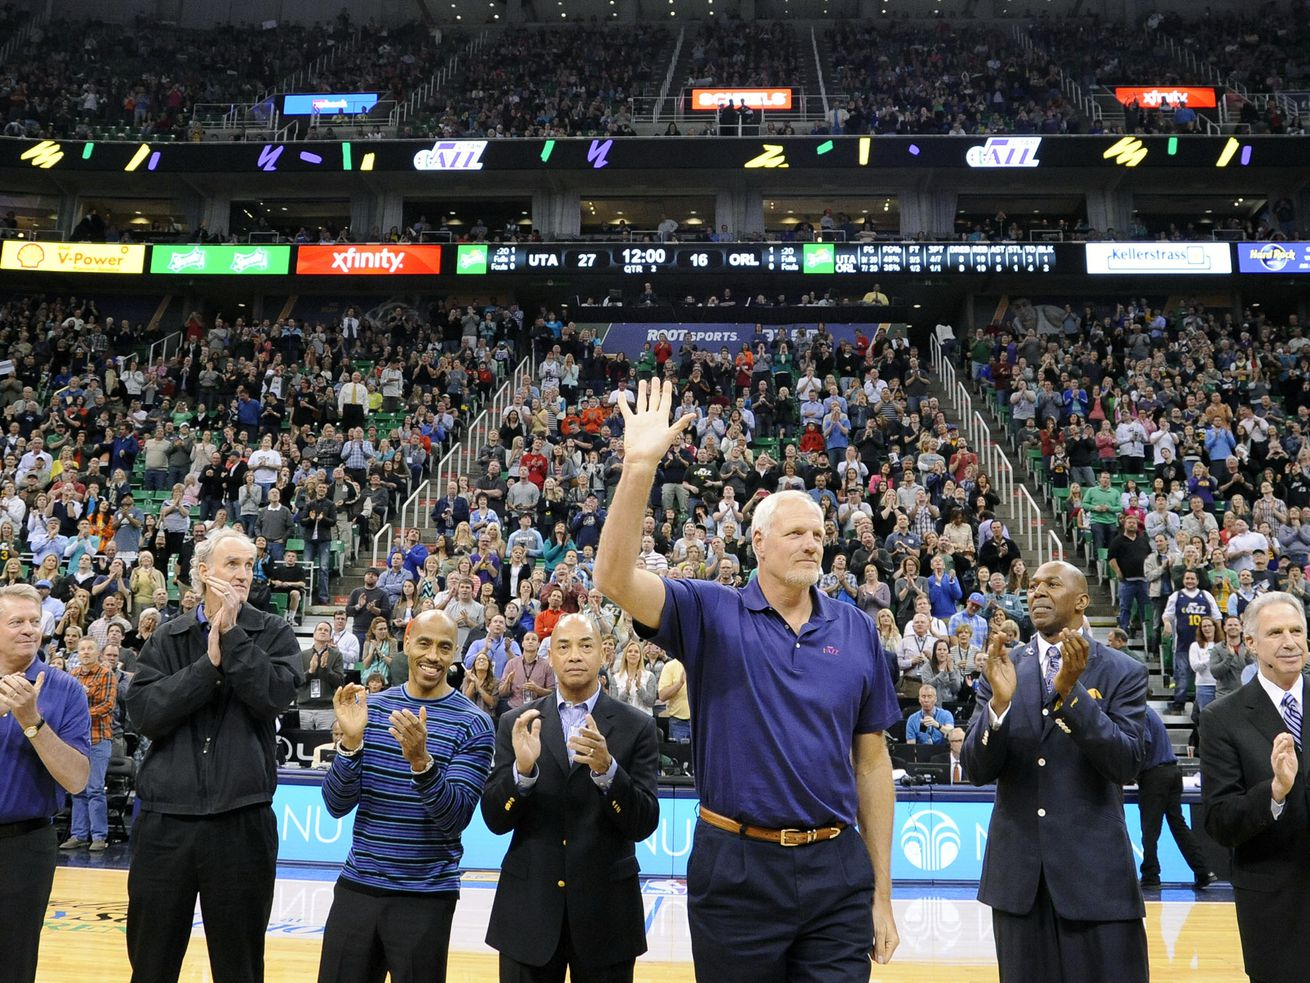 Mark Eaton along with the other members of the Jazz's first franchise playoff team are honored between the first and second quarter of a game against the Orlando Magic at EnergySolutions Arena on Saturday, March 22, 2014.